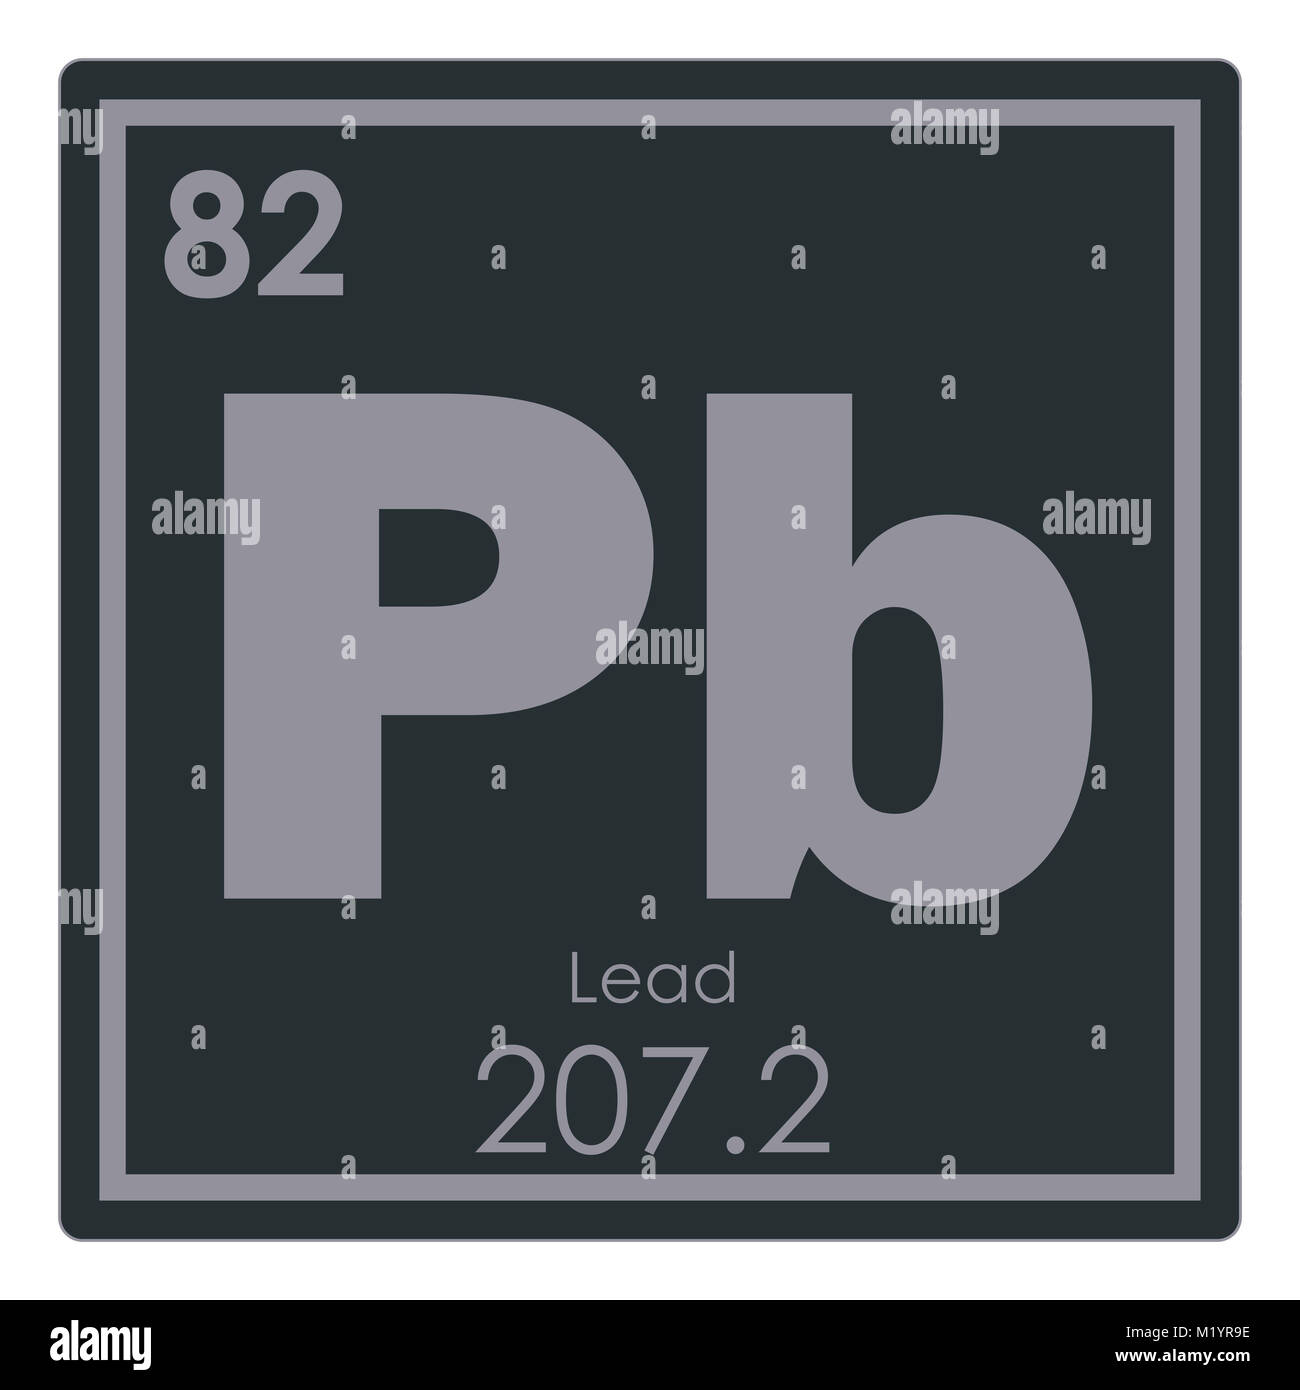 Lead chemical element periodic table science symbol stock photo lead chemical element periodic table science symbol urtaz Image collections